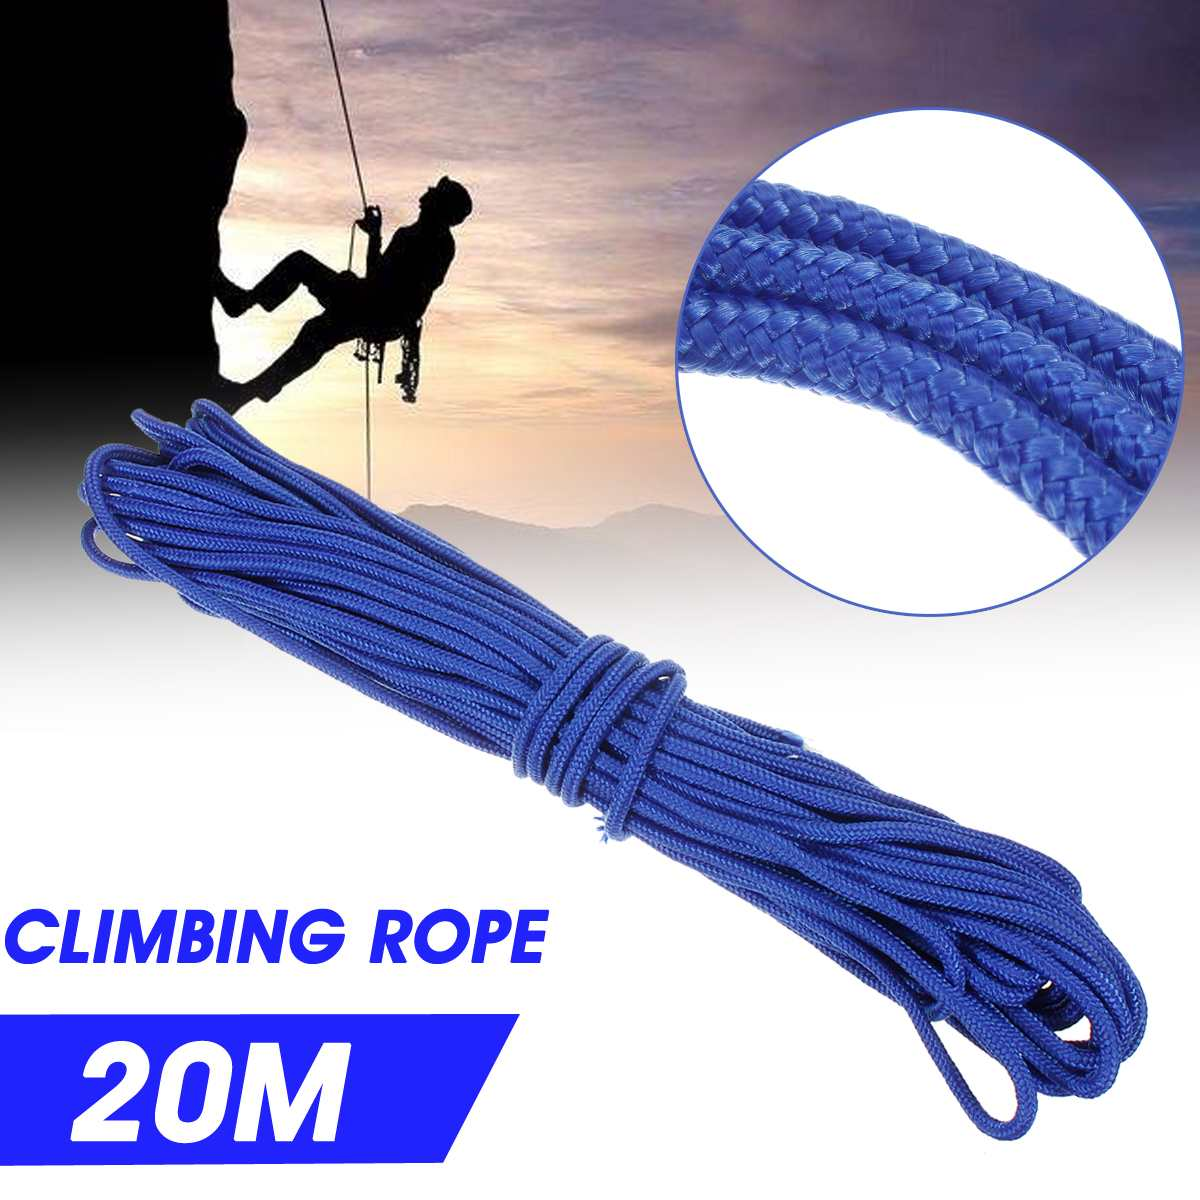 SGODDE 10m/20m 6mm Lifeline Rock Tree Wall Climbing Rope Outdoor Equipment Color Escape Survival Safety Rope High Strength Nylon